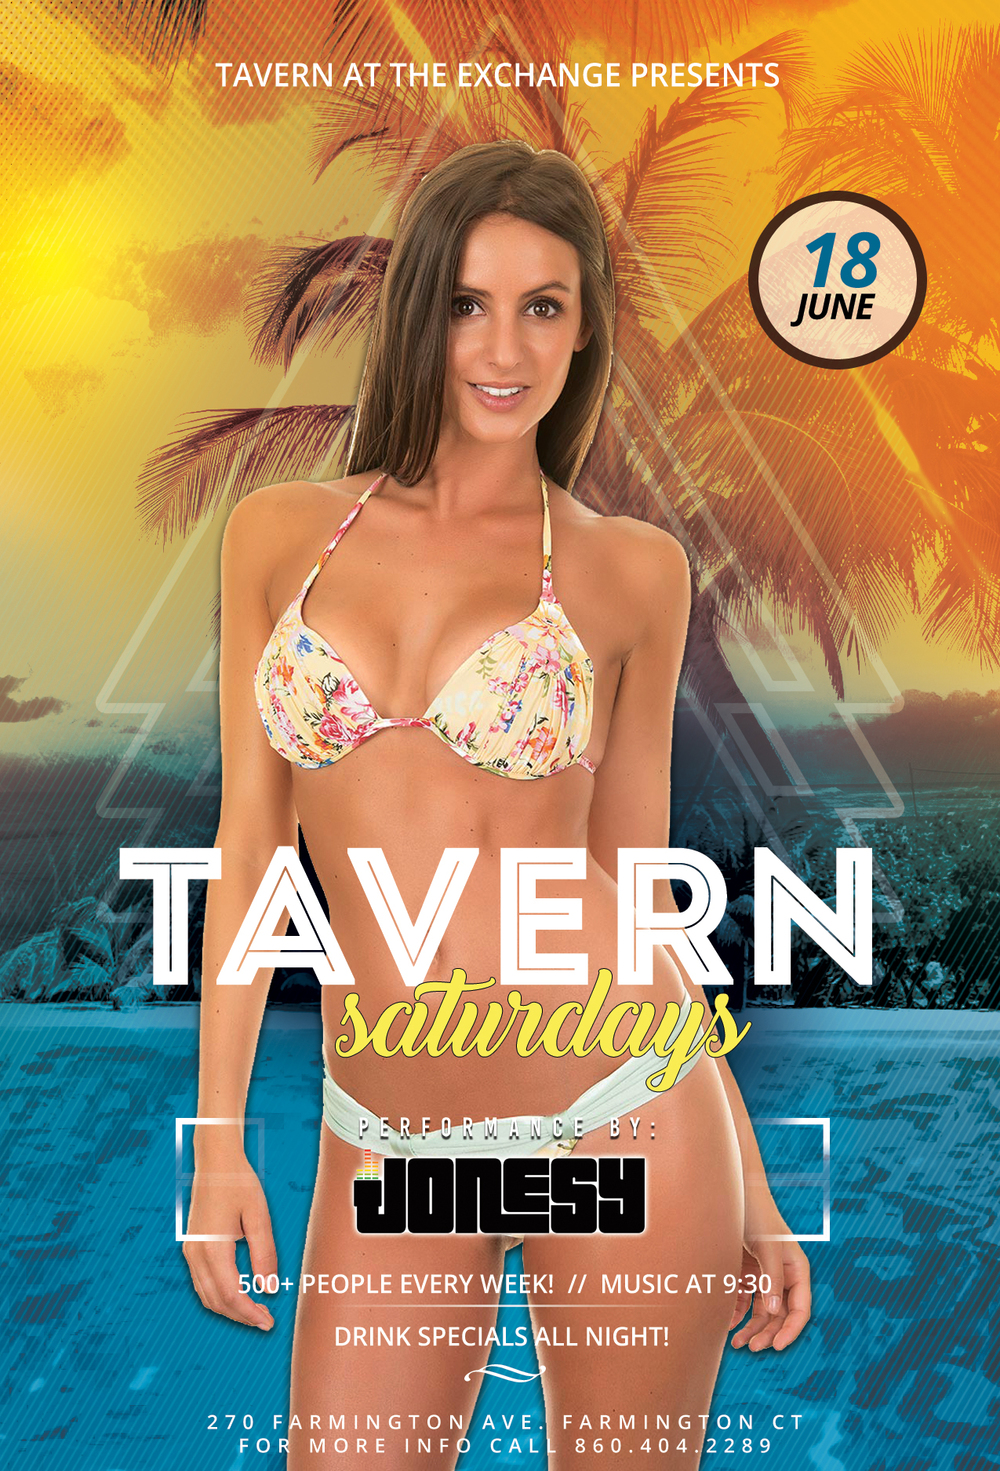 SATURDAY, JUNE 18TH JOIN US AT TAVERN AT THE EXCHANGE IN FARMINGTON, CT FOR MUSIC BY YOURS TRULY ALL NIGHT LONG!  HOSTED BY ALBY & ERIC SAVAGE, ITS THE BIGGEST SATURDAY NIGHT PARTY IN THE WHOLE STATE OF CT!  DRESS TO IMPRESS & ARRIVE EARLY TO AVOID A LINE.  SEE YOU ALL THERE!